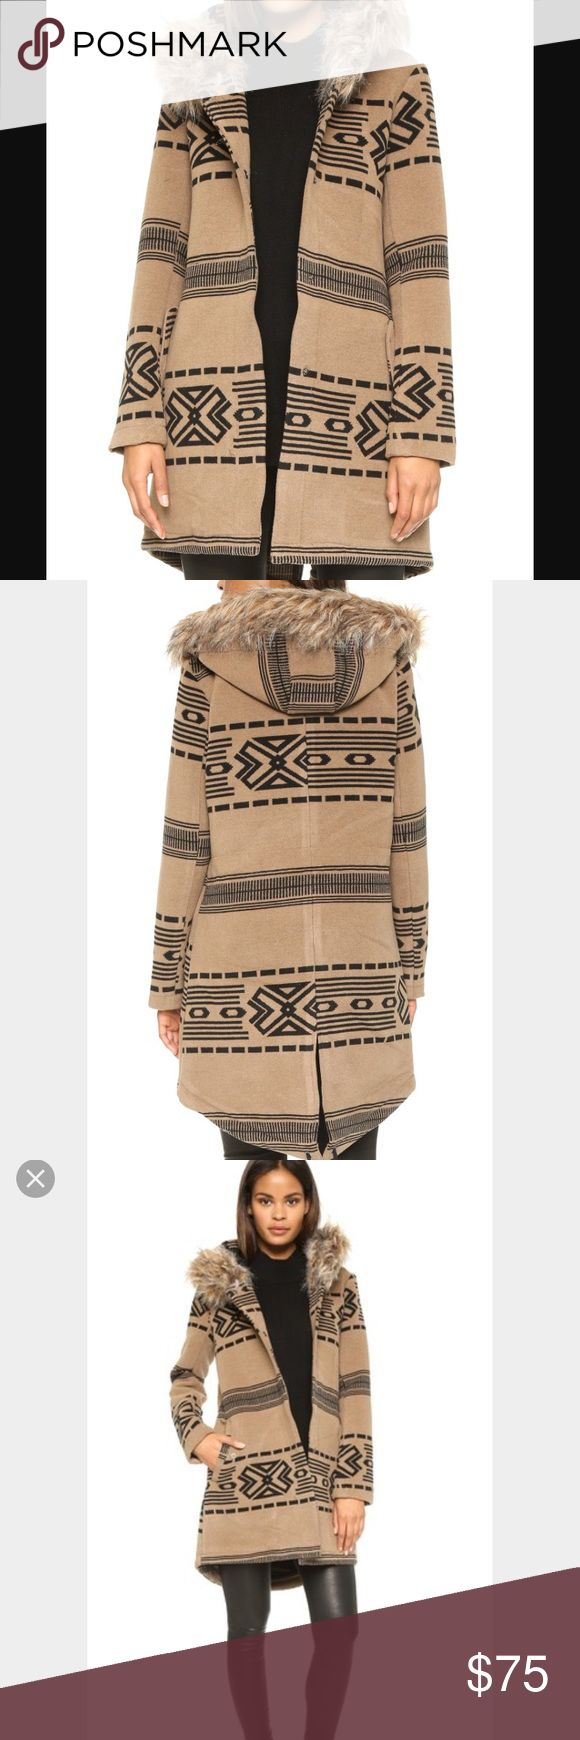 BB Dakota Tribal Coat 😍 SOLD OUT EVERYWHERE‼️ Beautiful coat, worn for a season - still in great condition! Some pilling as shown in pics but definitely a lot of life left in this coat! Make me an offer 😊 BB Dakota Jackets & Coats